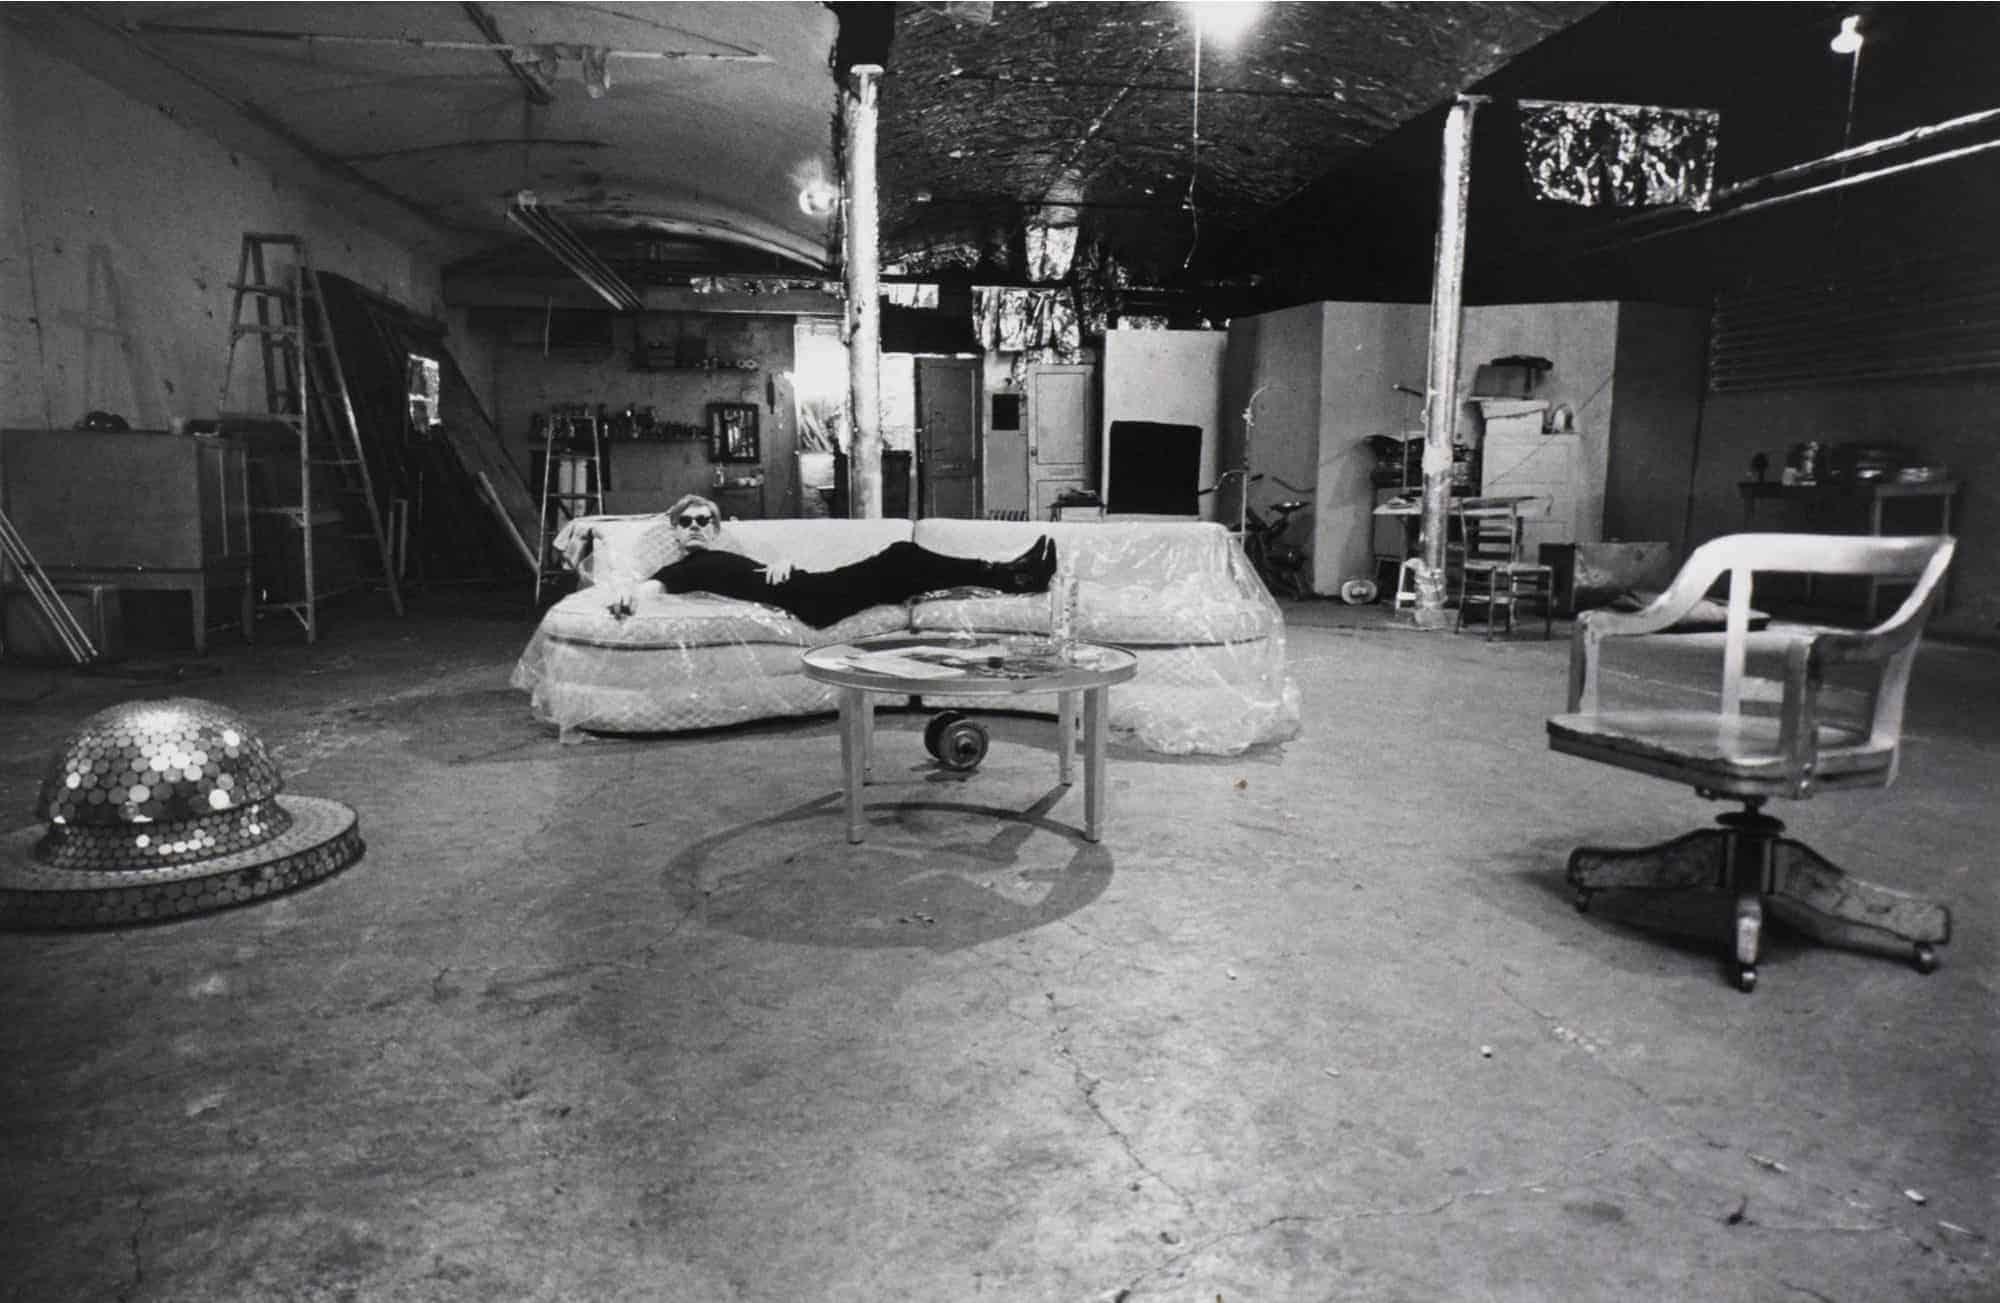 Andy Warhol on a couch at the Factory